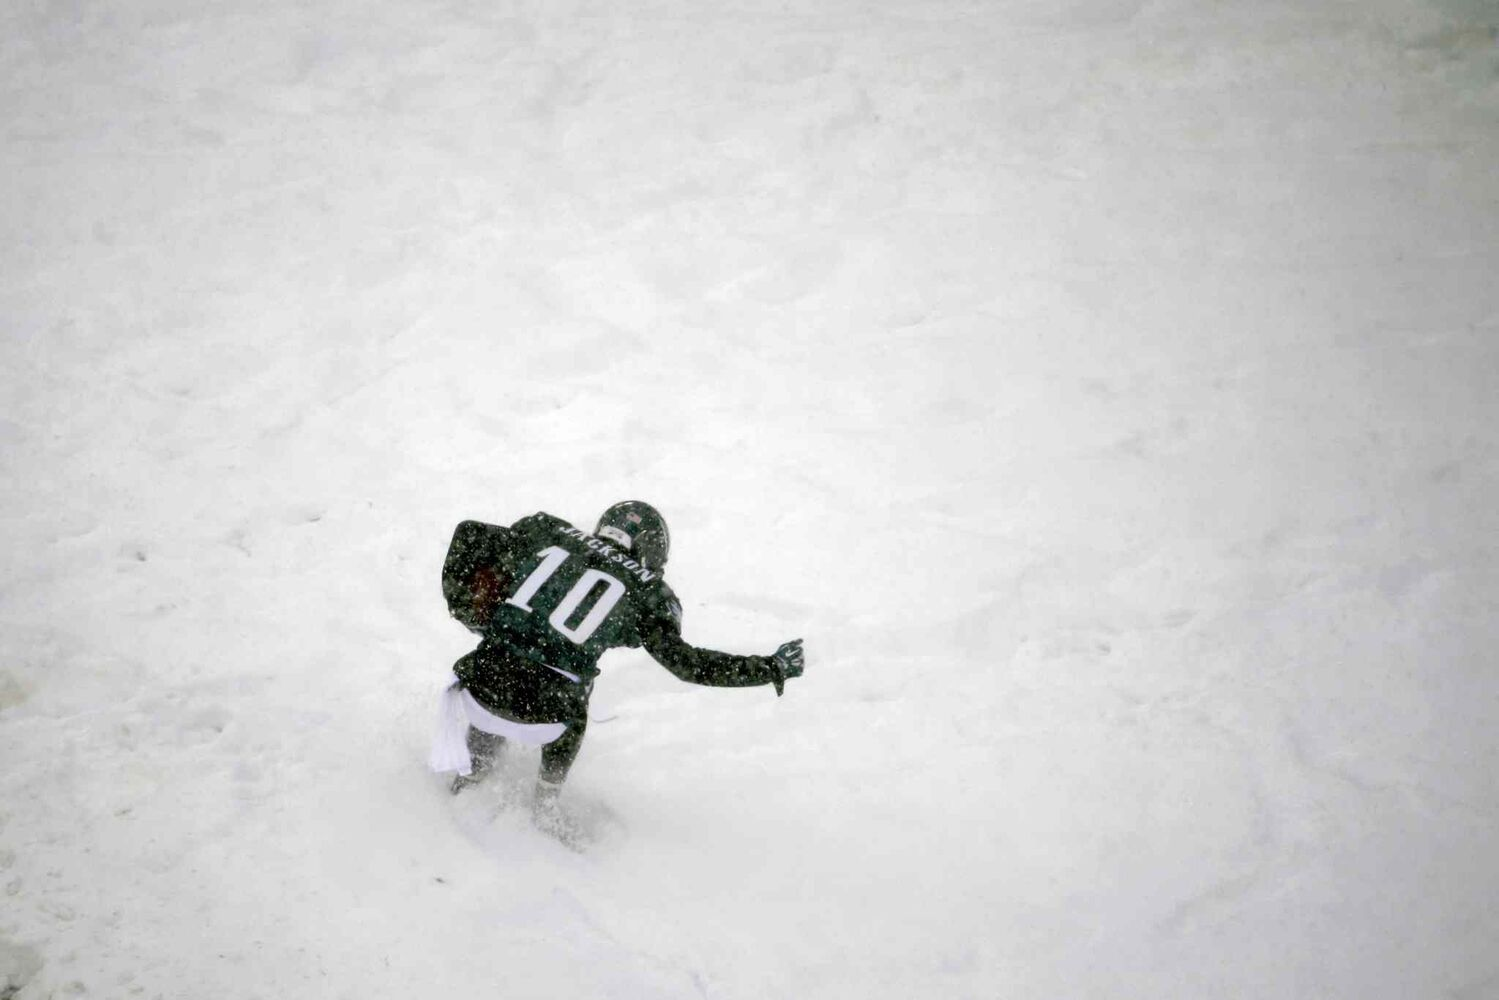 DeSean Jackson of the Philadelphia Eagles celebrates in the snow after a touchdown during the second half. (Matt Rourke / The Associated Press)